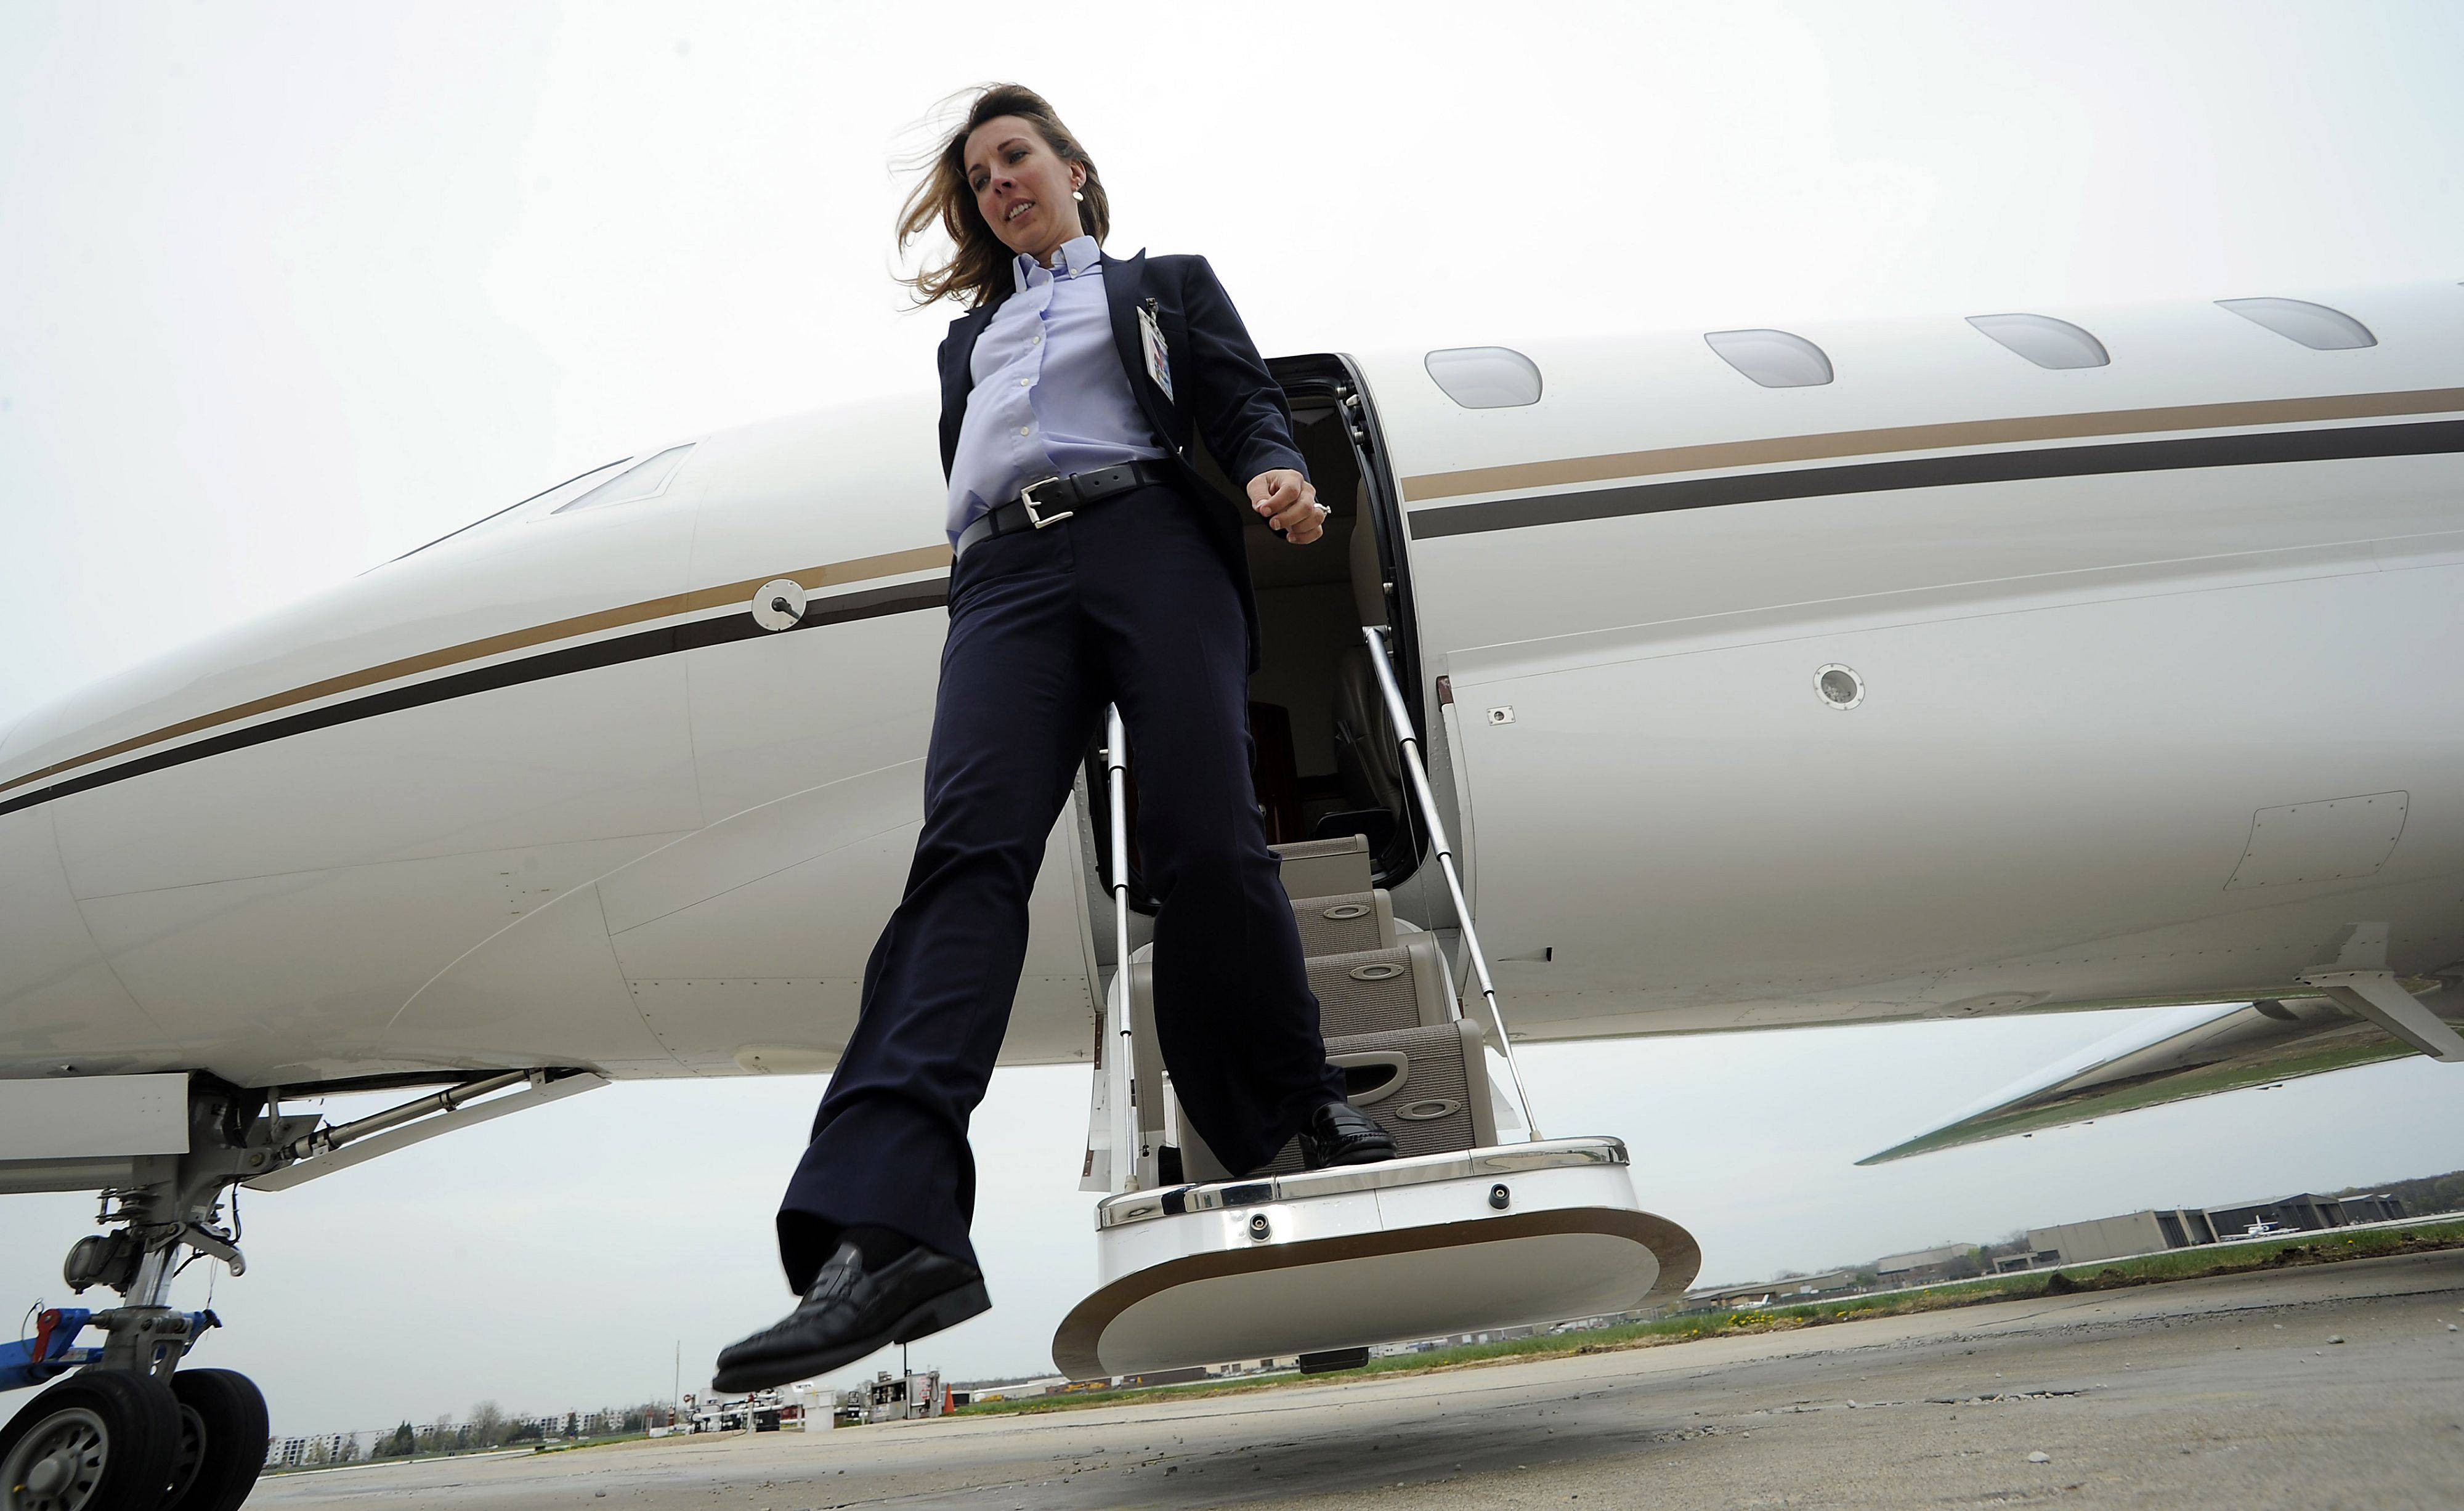 Sorenson leaves her Citation Sovereign aircraft heading back to the hanger to check the weather and gives the thumbs-up before she leaves Chicago Executive Airport.